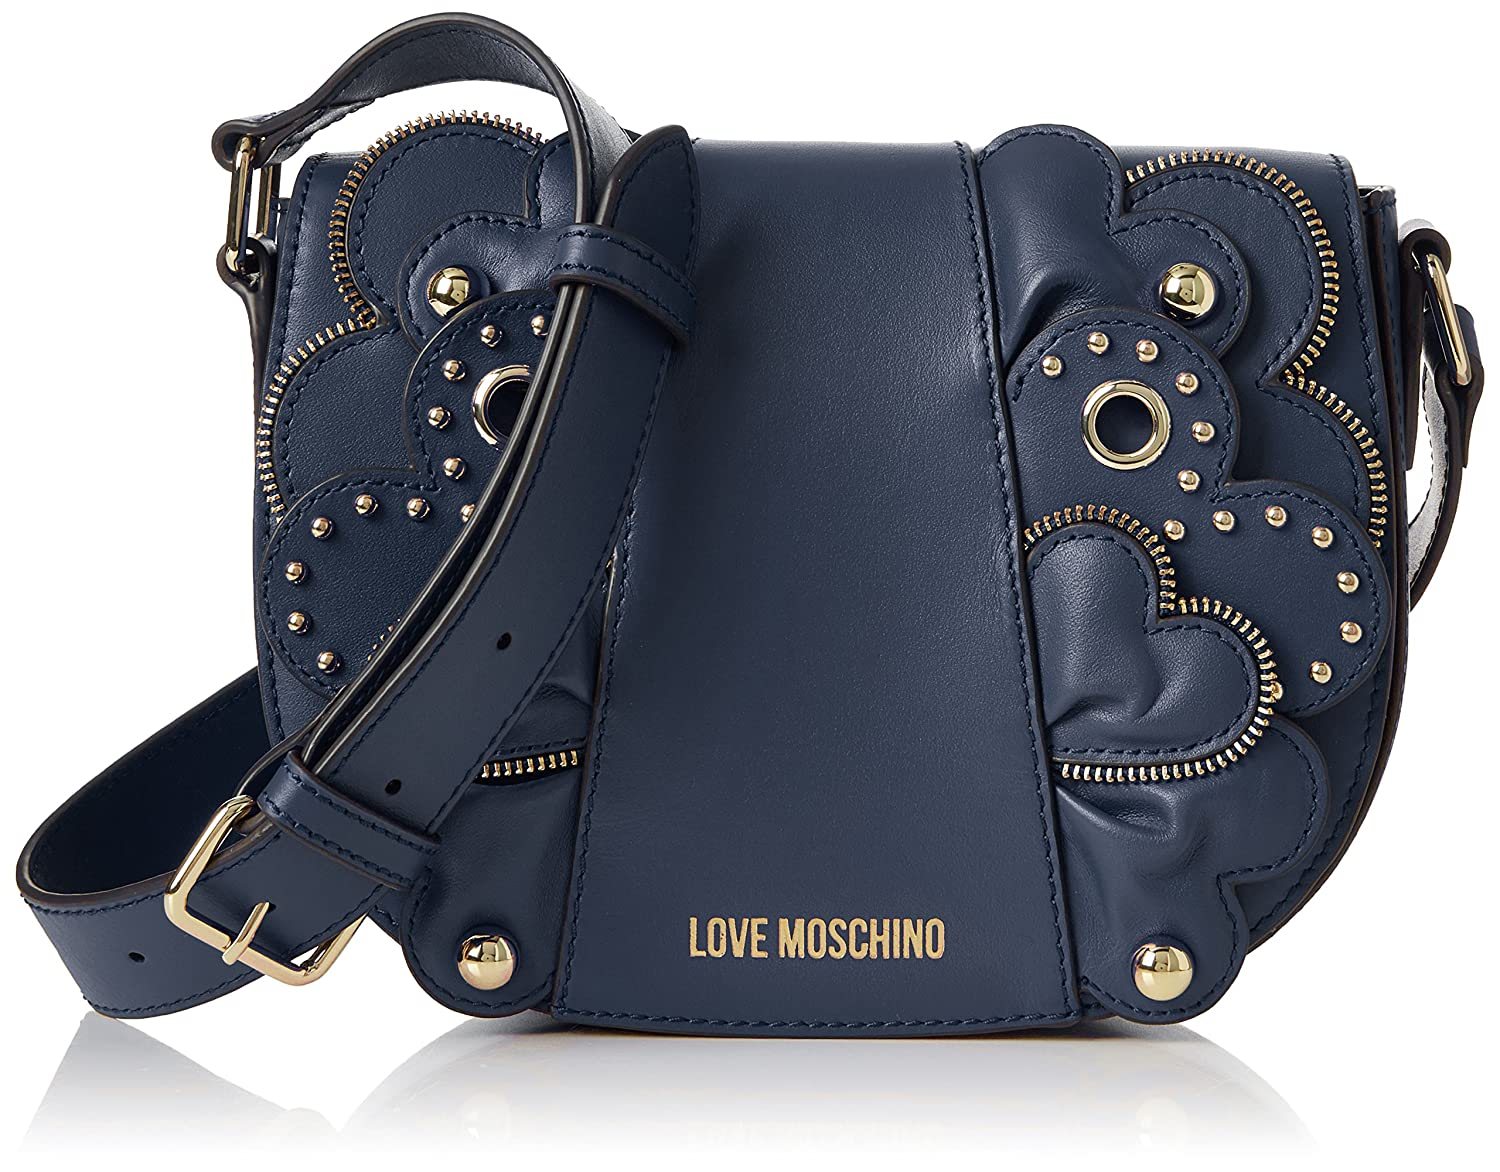 Love Moschino Borsa Vitello Smooth Blu, Women'S Baguette